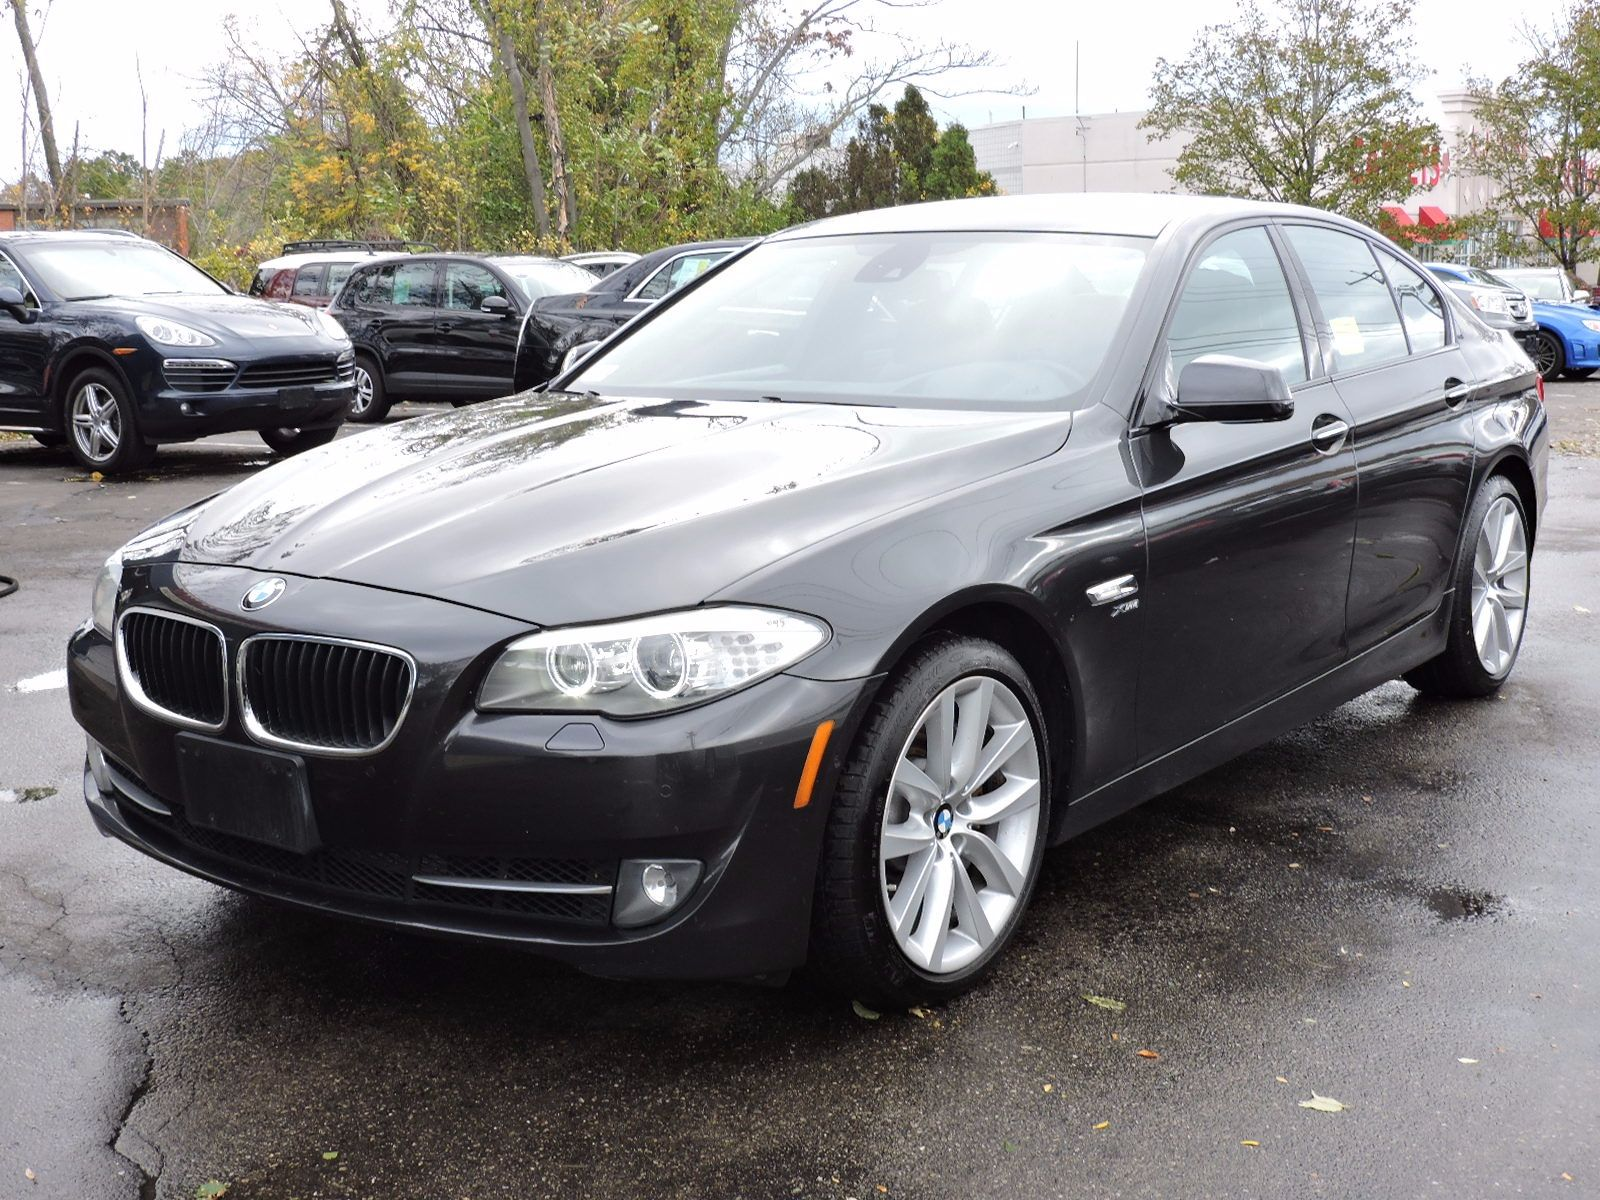 2011 BMW 535i xDrive - All Wheel Drive - Sport Package